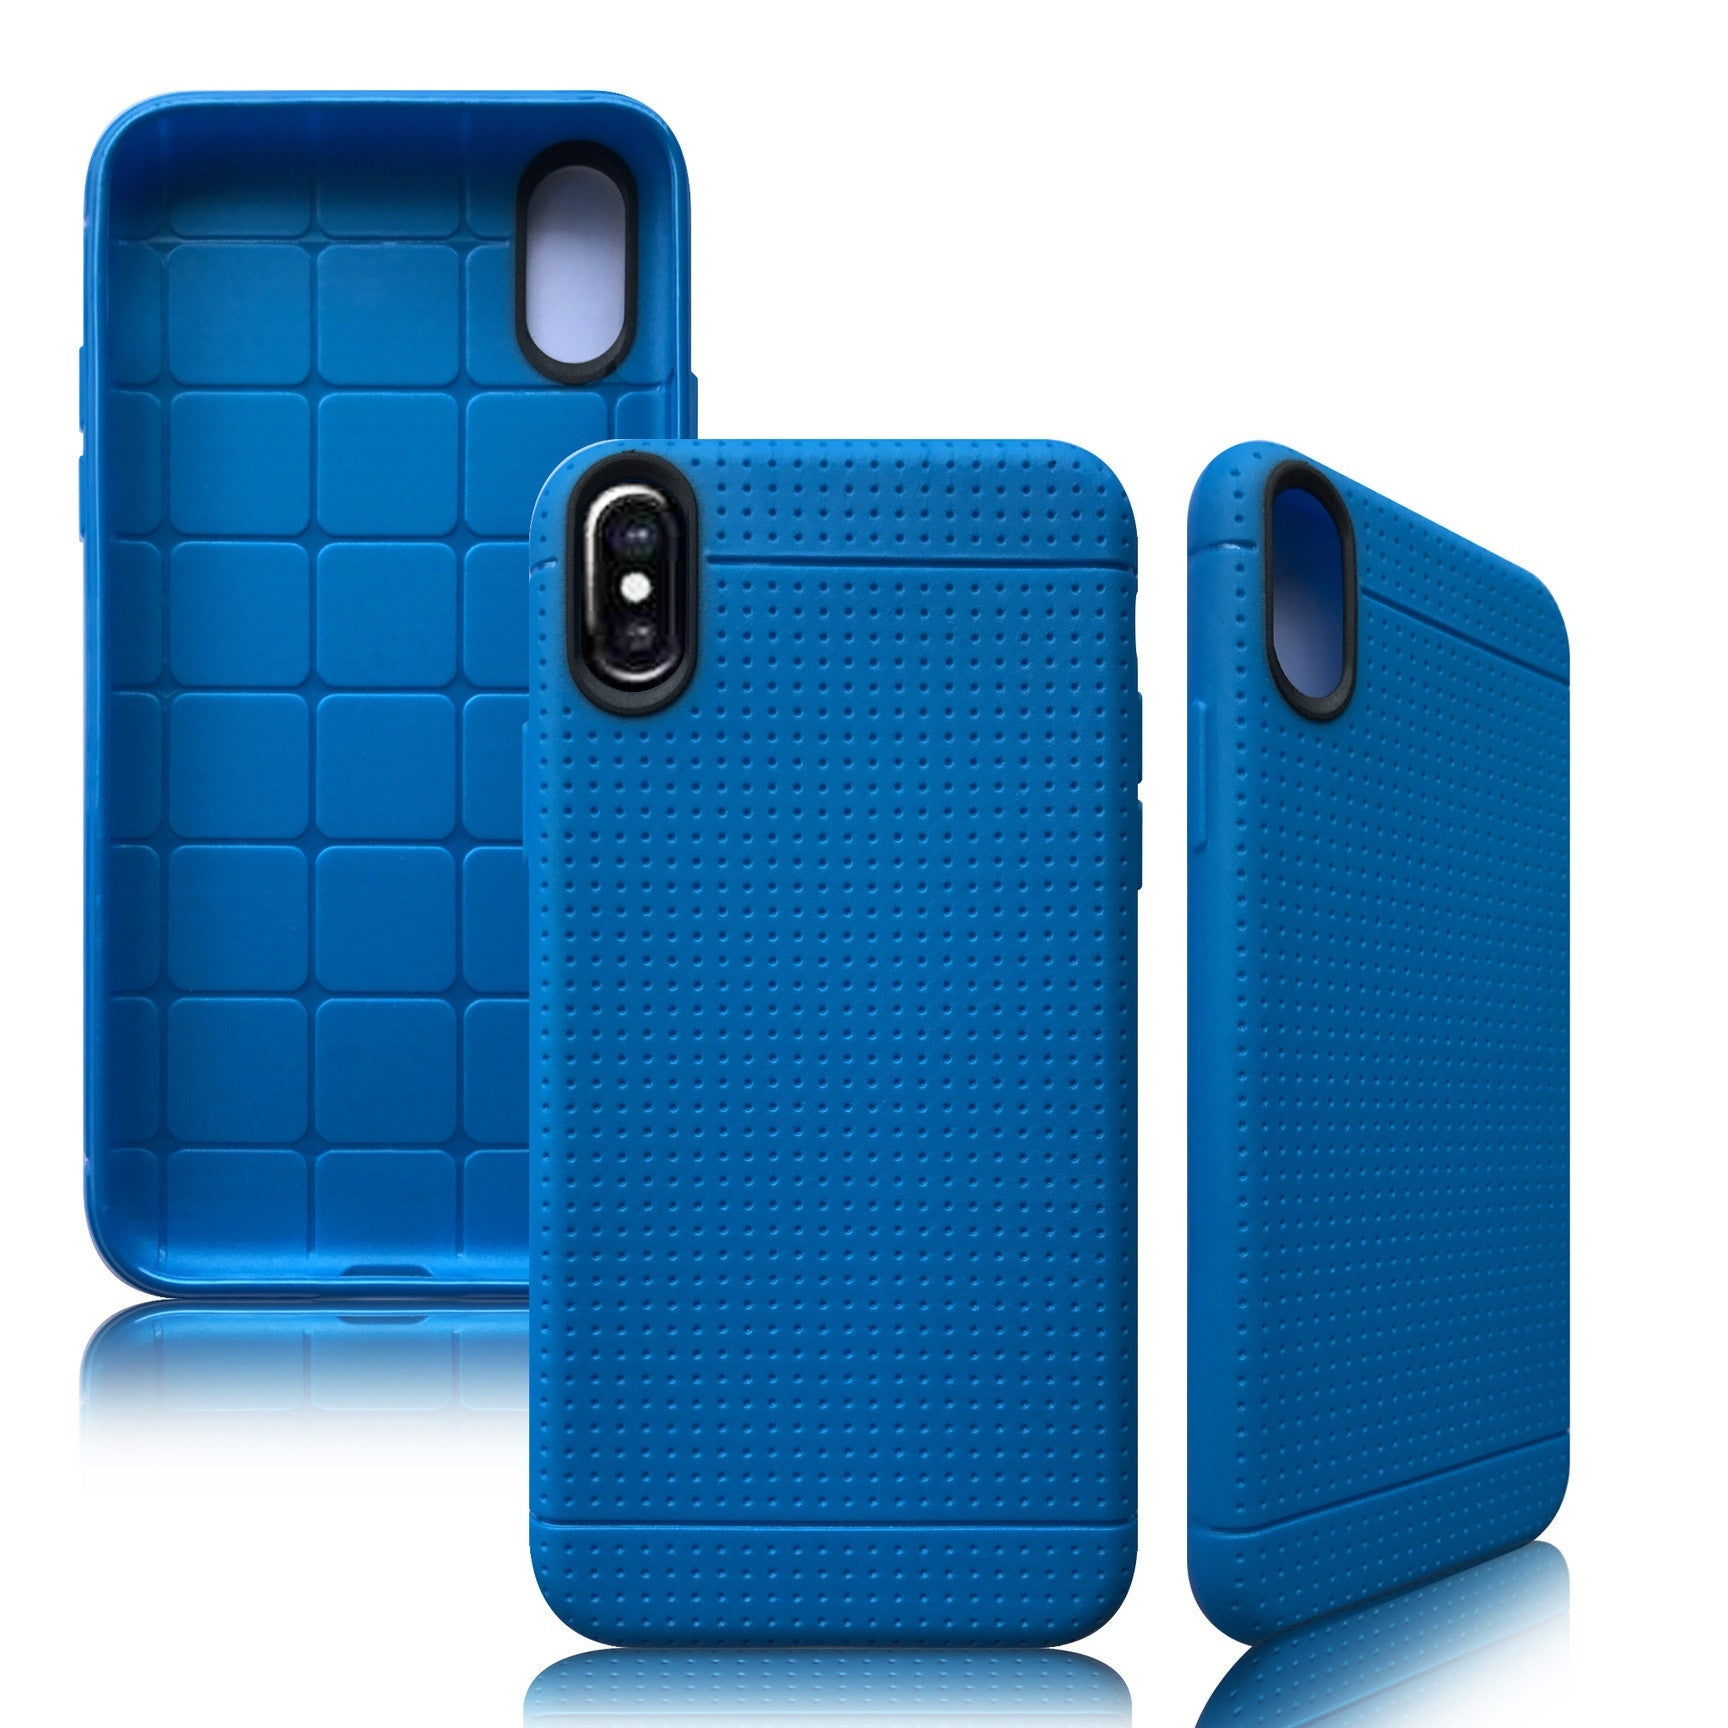 SYMMETRY SERIES Case for iPhone X